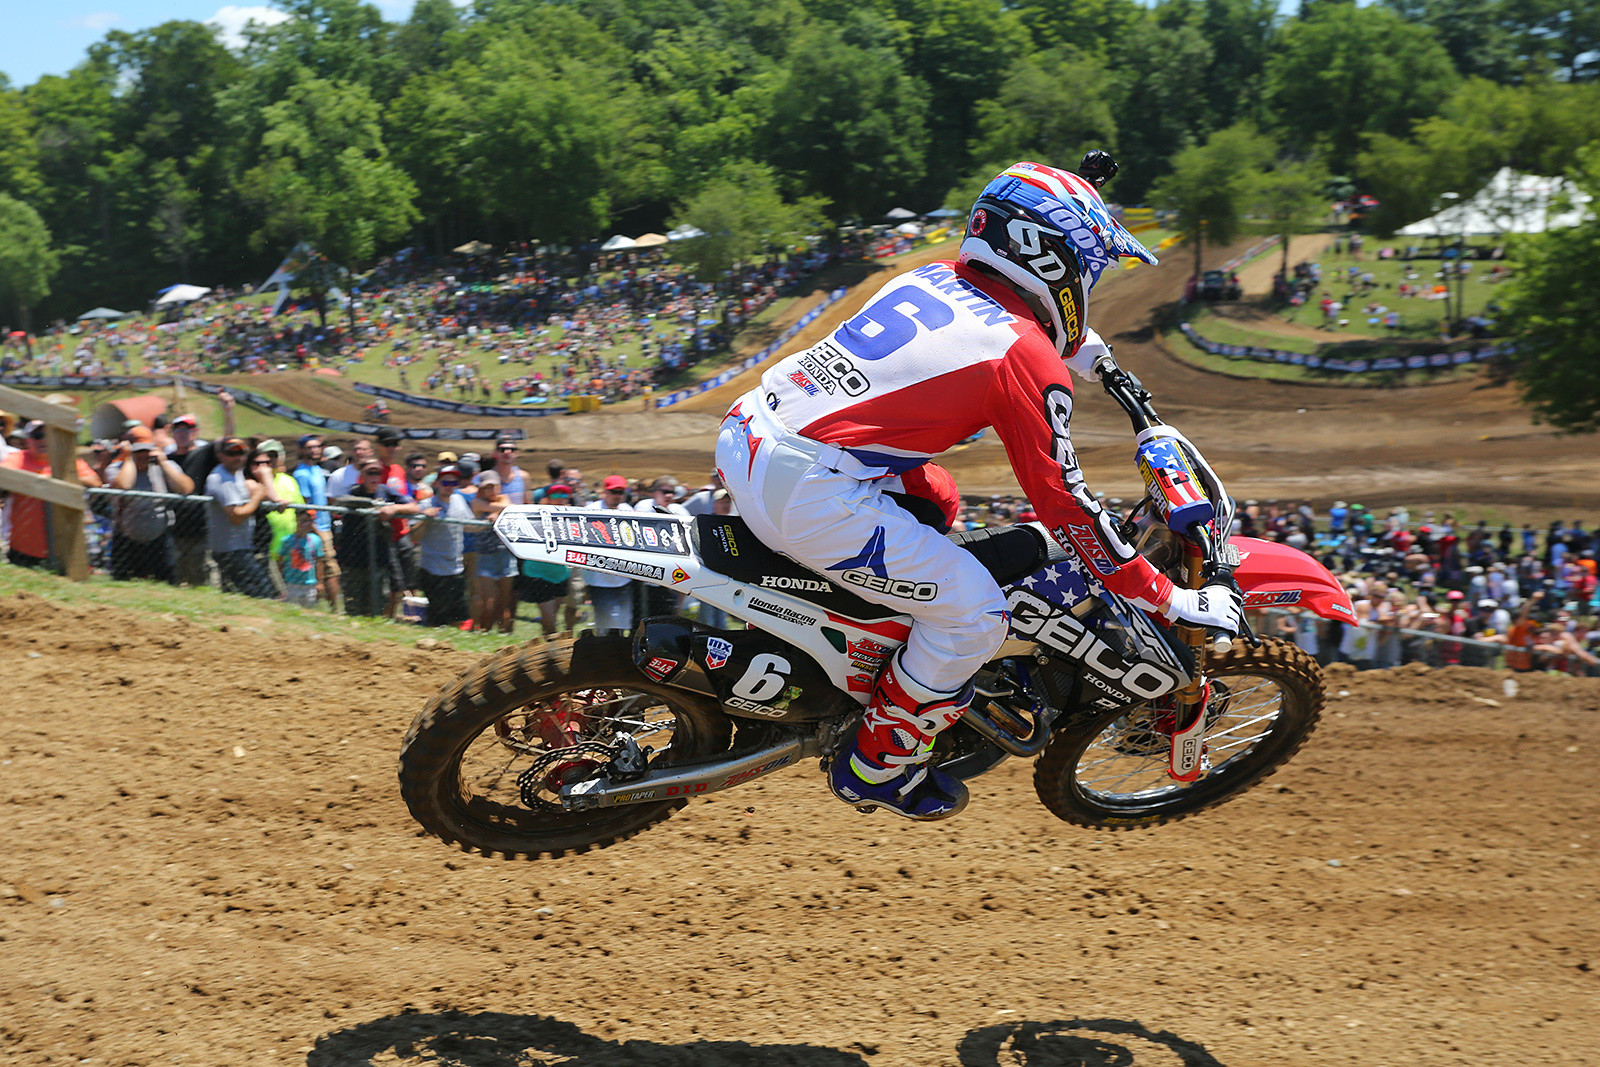 Jeremy Martin grabbed the holeshot in moto one of the 250s, and you could tell he was on a mission to maximize points here.